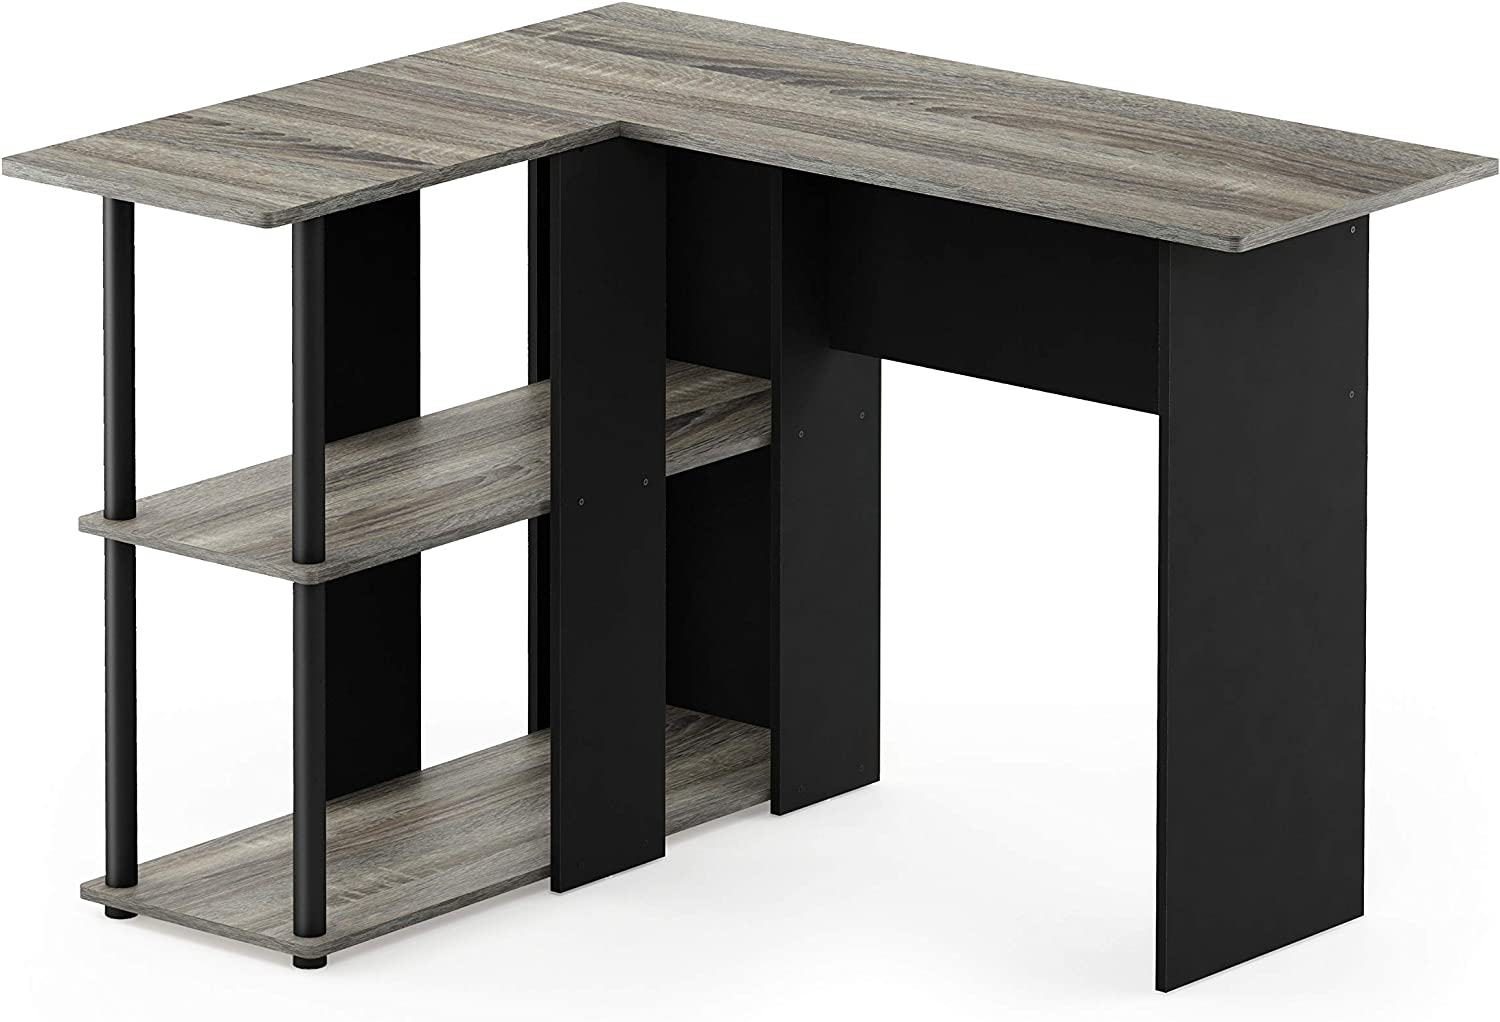 Furinno 17092GYW BK Abbott L-Shape Desk with Bookshelf, French Oak Grey Black